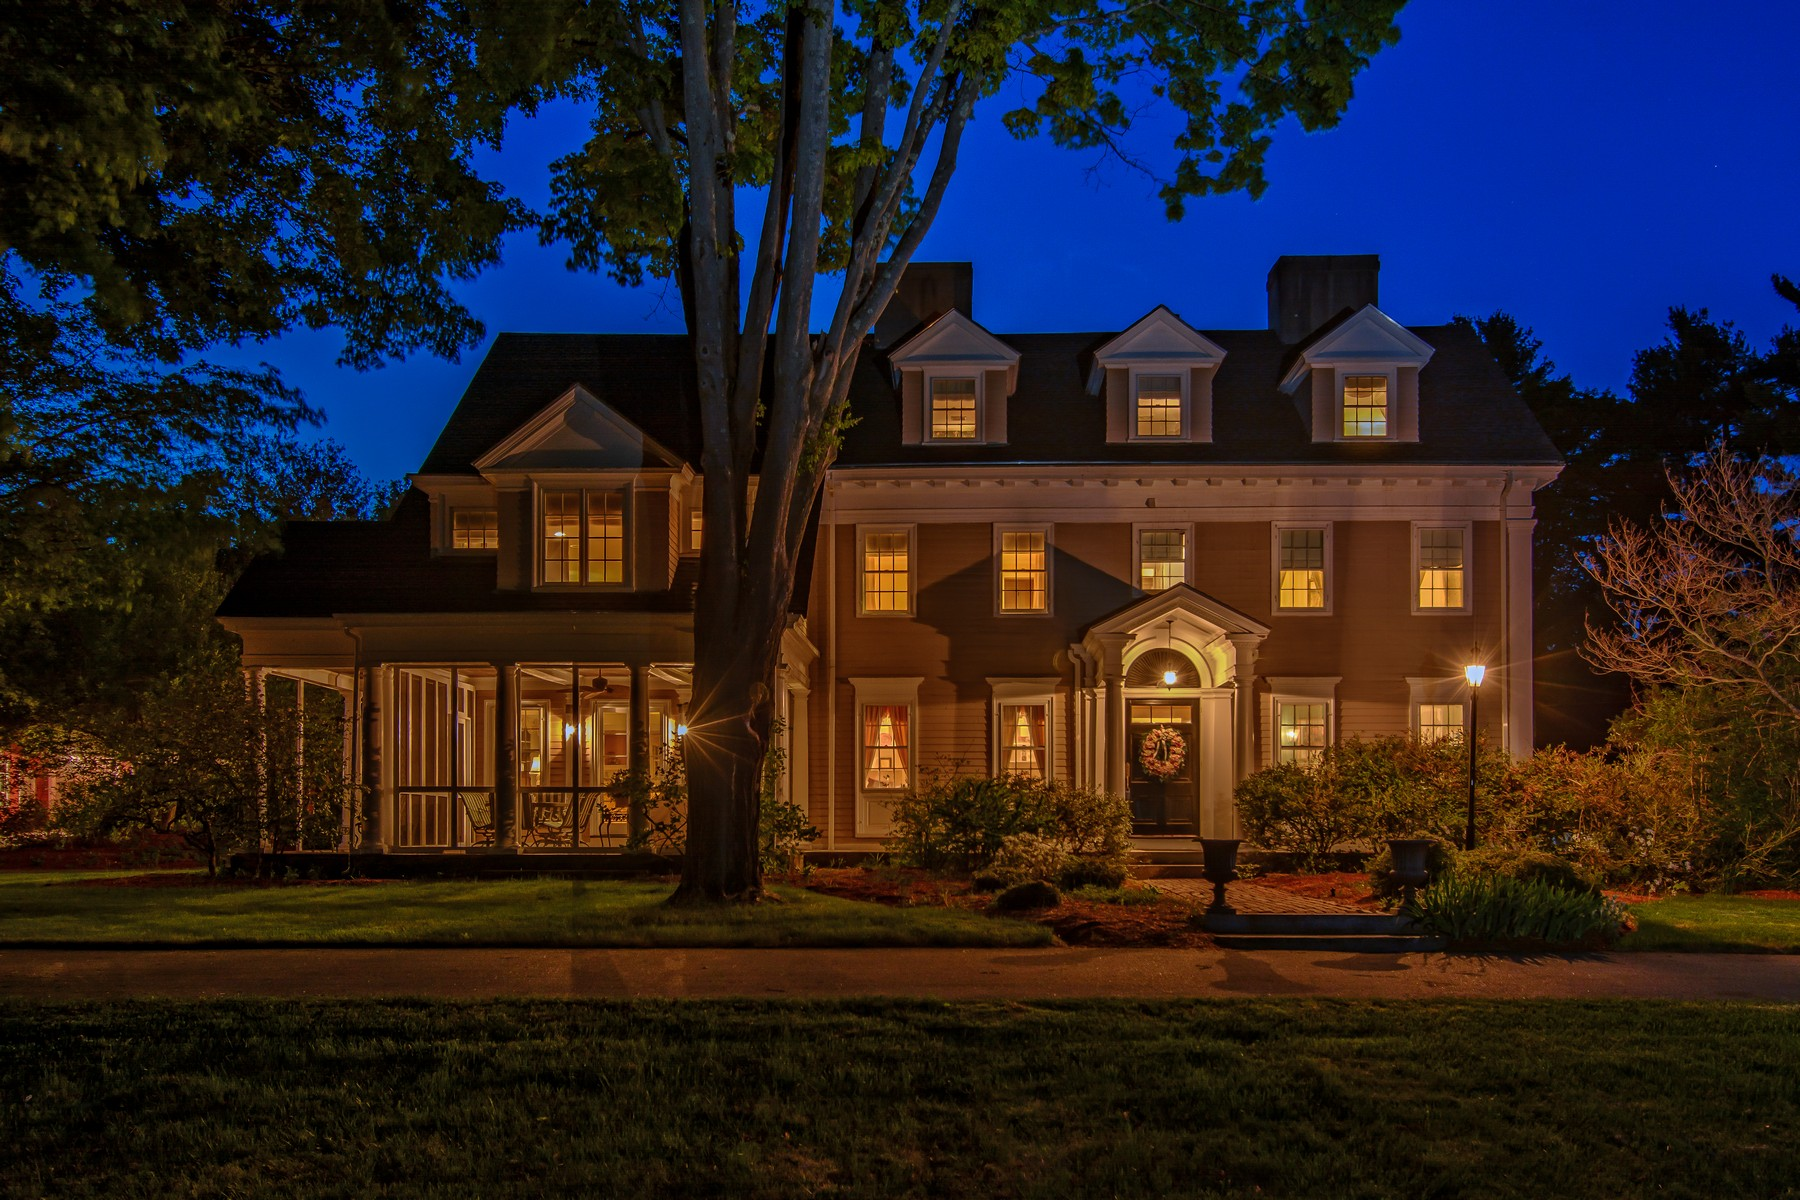 Property For Sale at Quintessential Federal Style Colonial & Estate